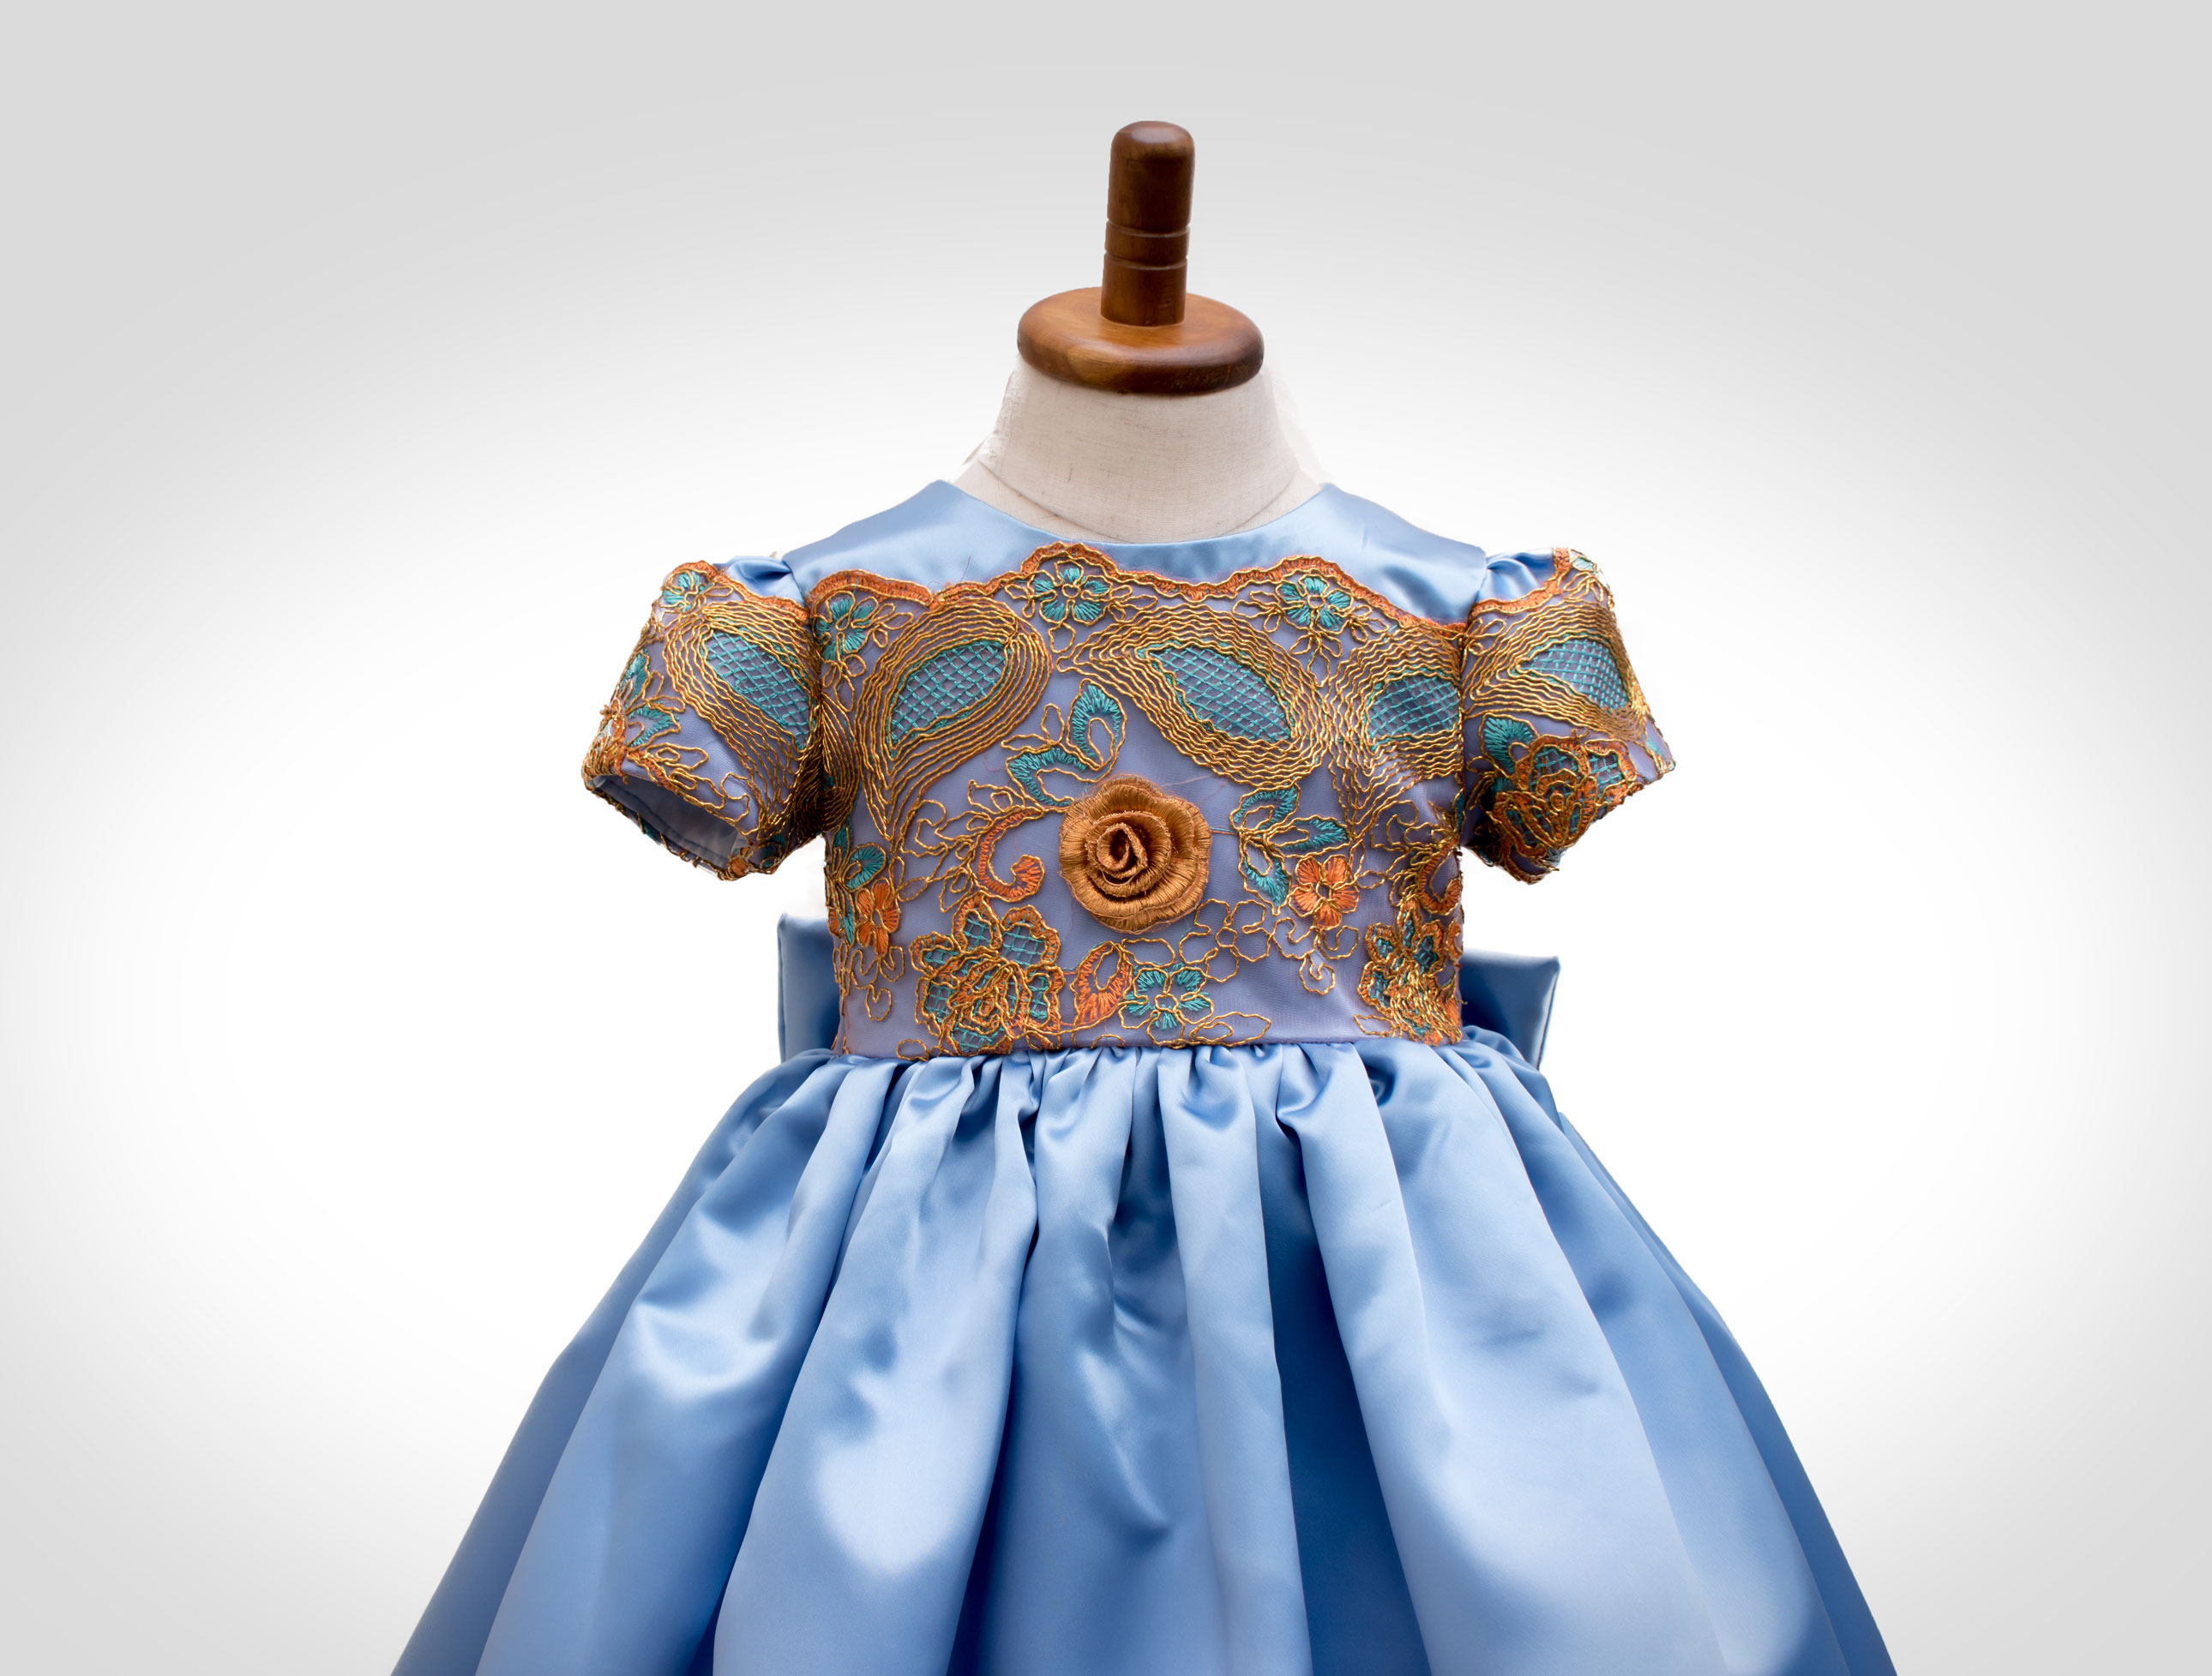 Blue Satin Flower Girl Dress Ndiritzy